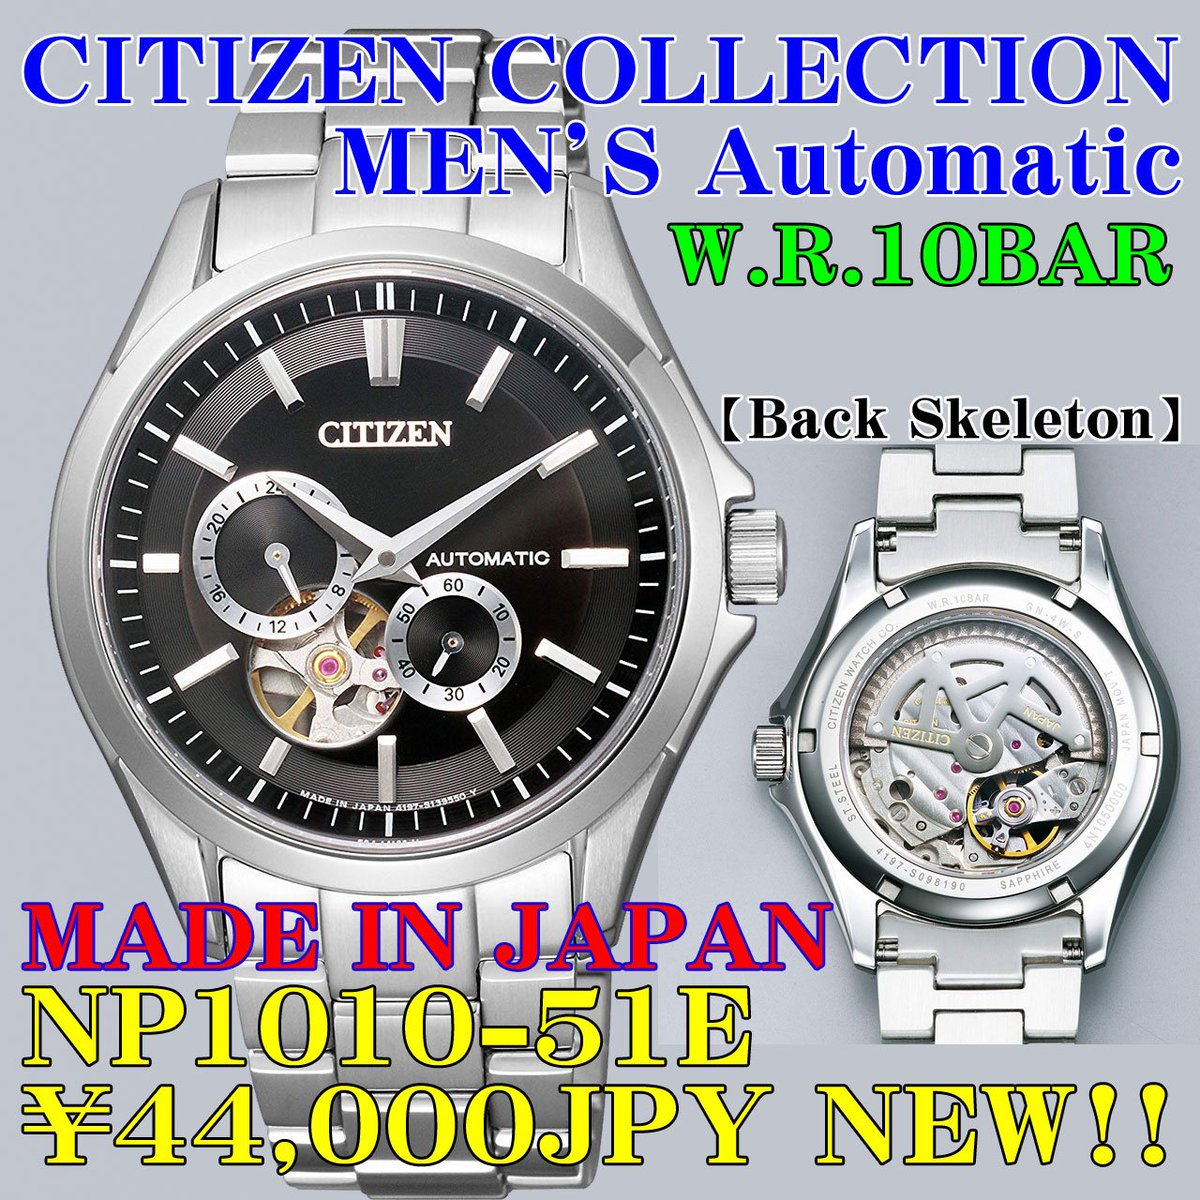 CITIZEN MEN'S Watch Automatic NP1010-51E 44,000JPY NEW!! FREE International Shipping #ebay  #ujiie_japan  Automatic watch made in Japan Ship immediately by EMS. #citizen #japan #automatic #watch